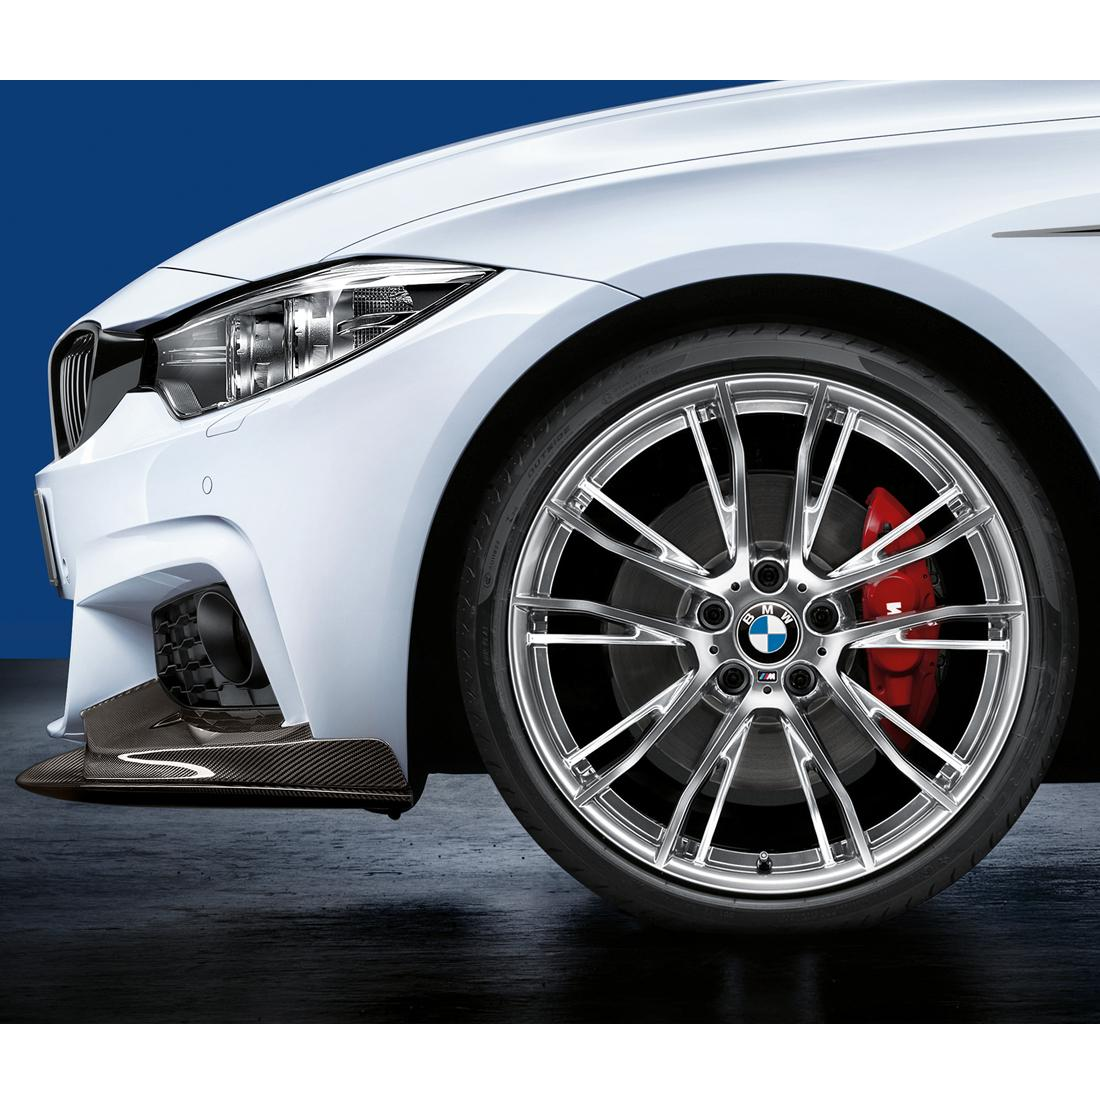 BMW 624M Wheel and Tire Set Polished